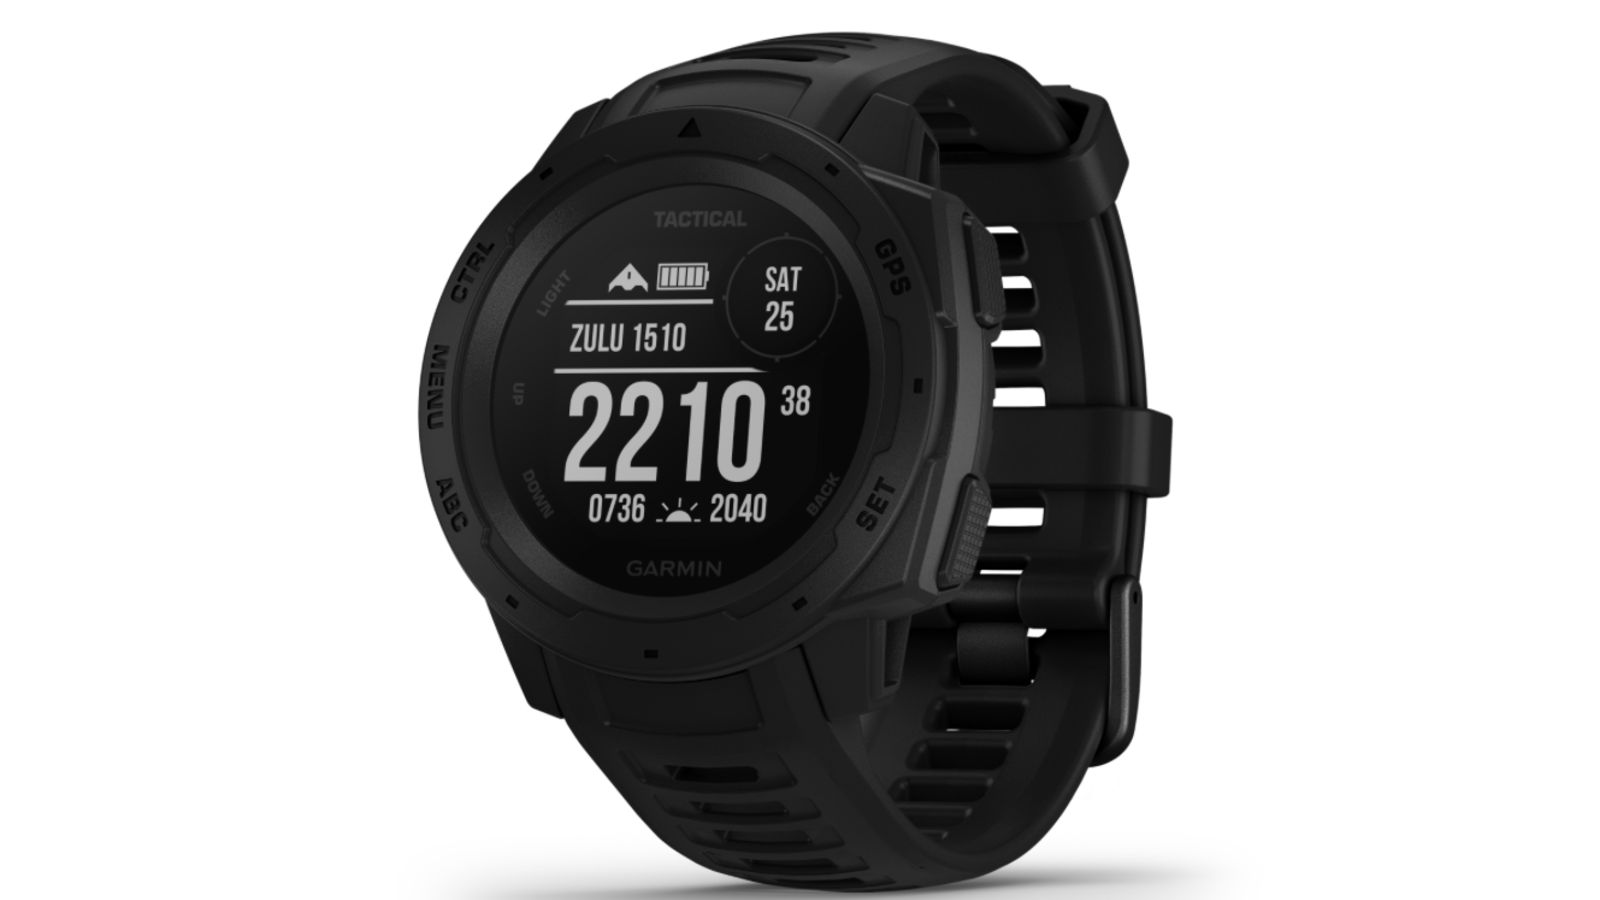 Garmin's tough new Tactical Edition watch comes with stealth mode and night vision support